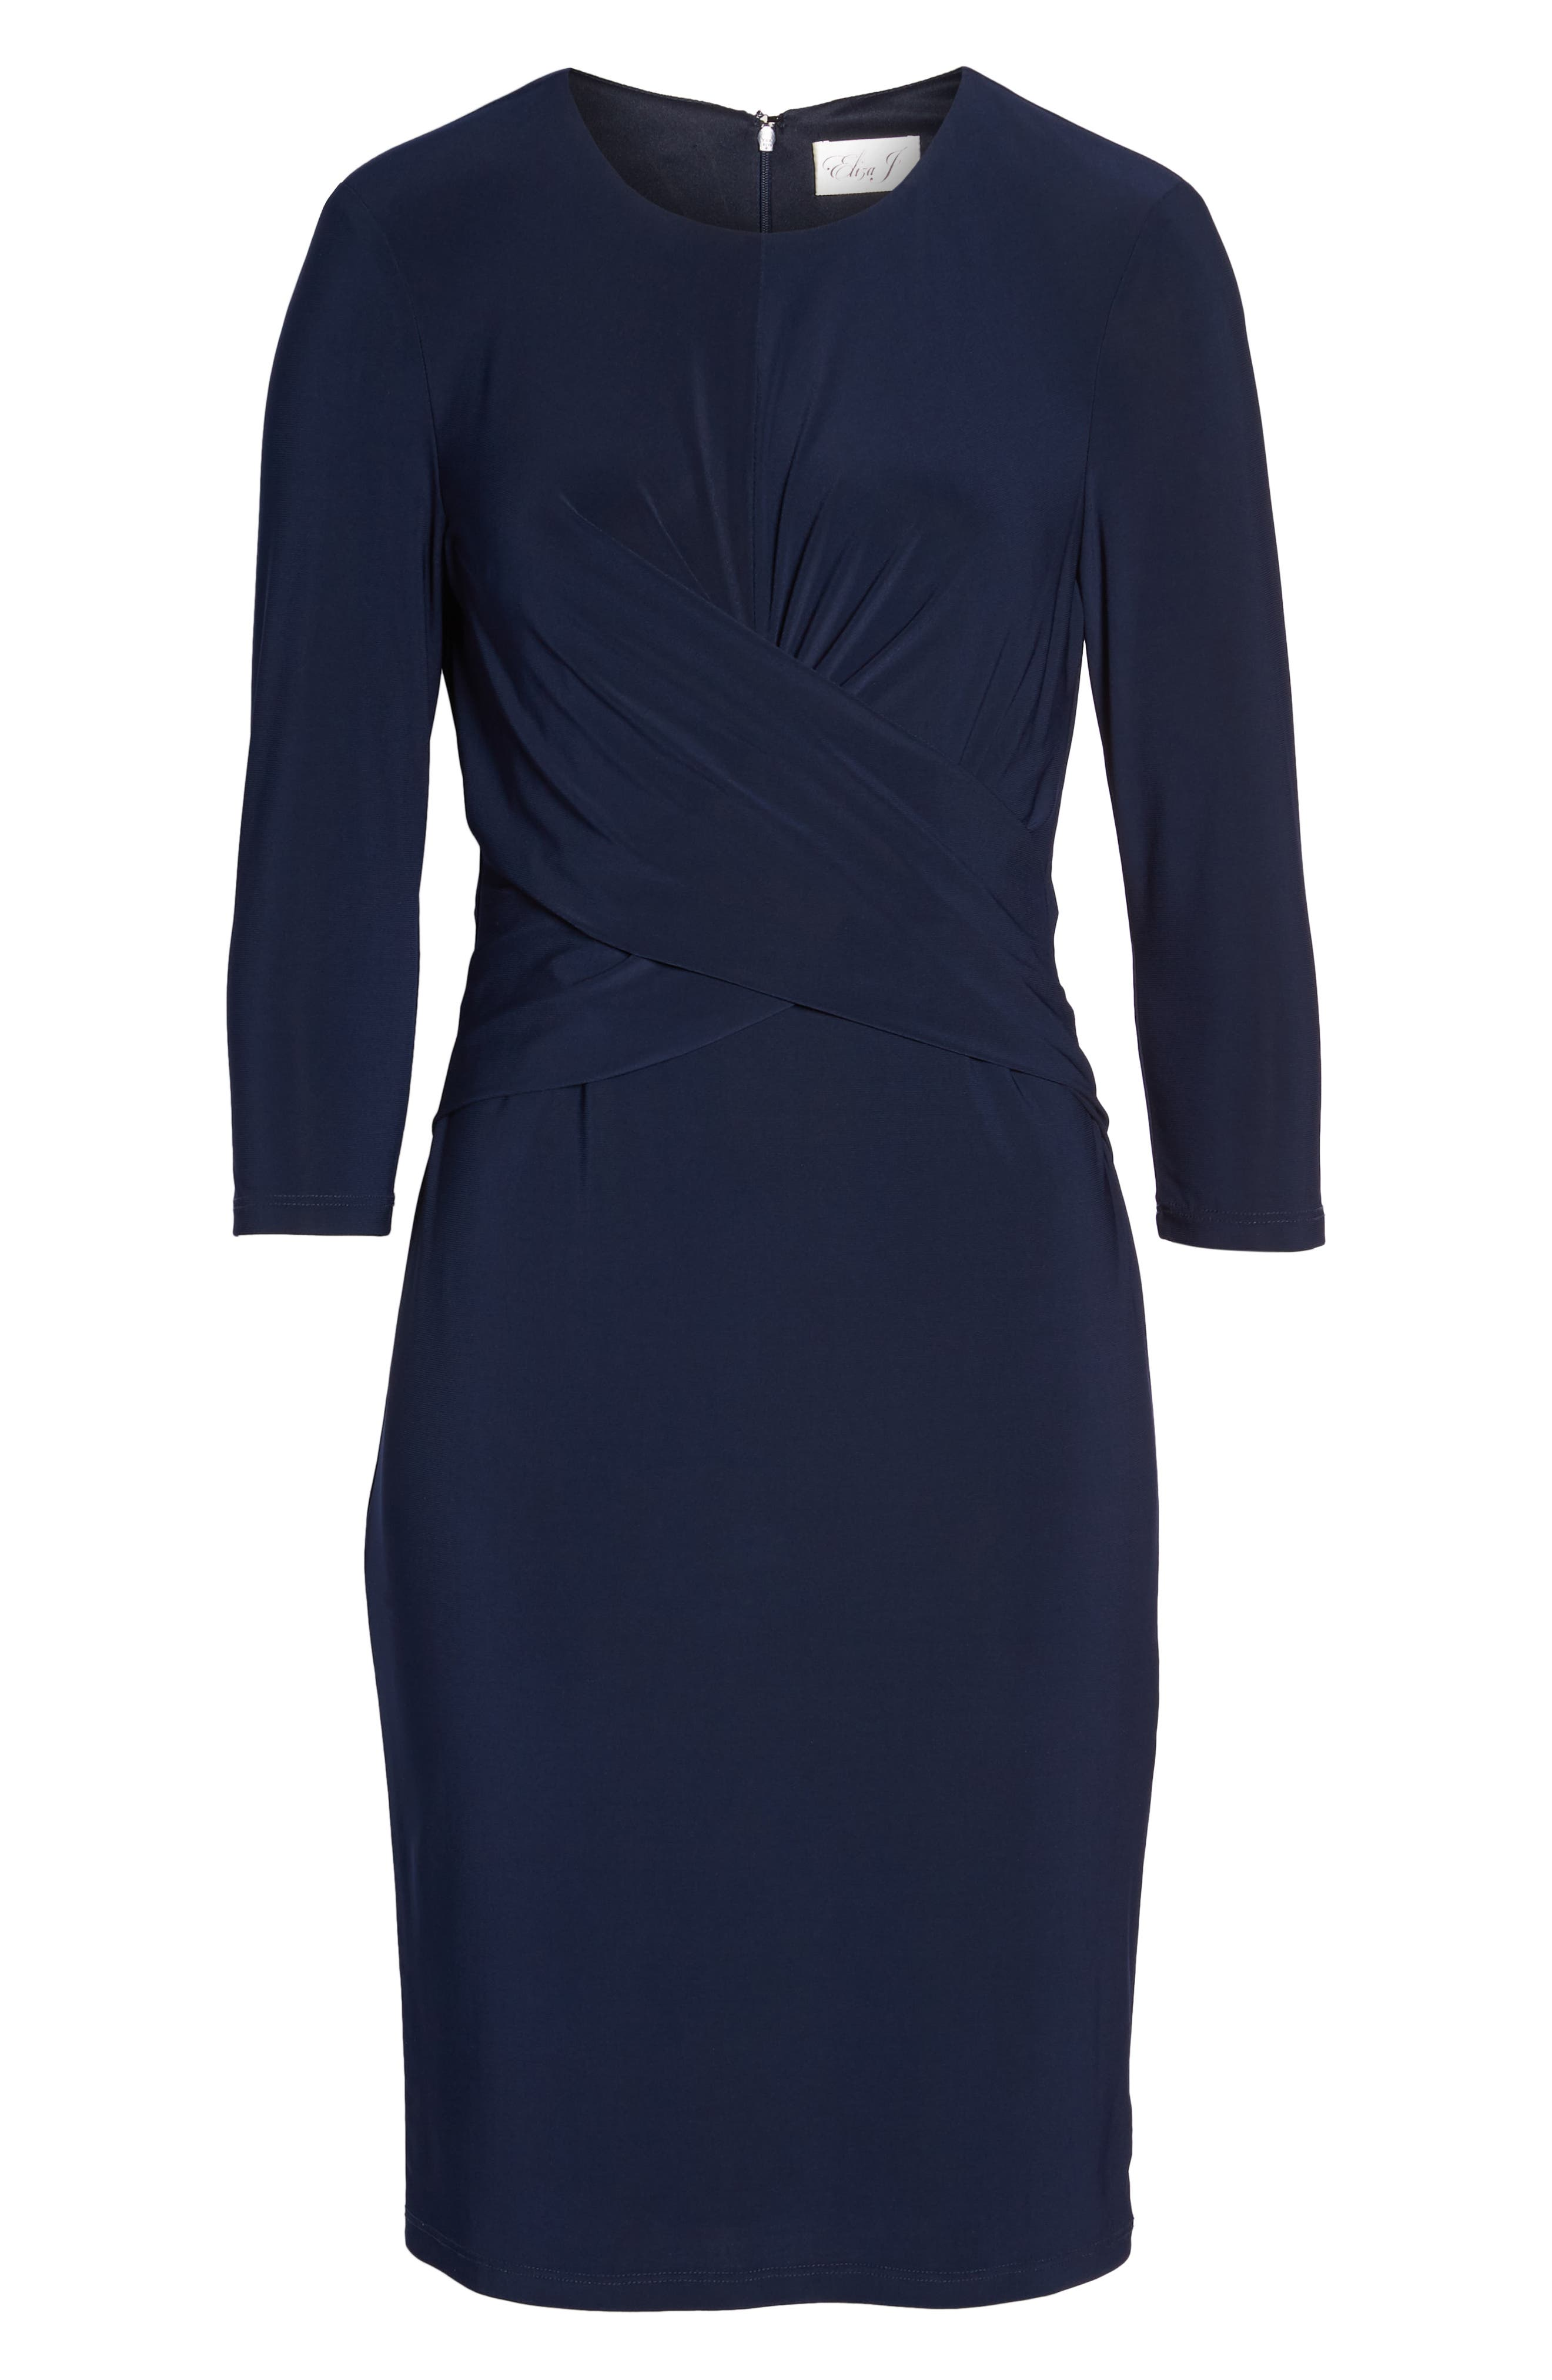 Ruched Jersey Sheath Dress,                             Alternate thumbnail 8, color,                             NAVY